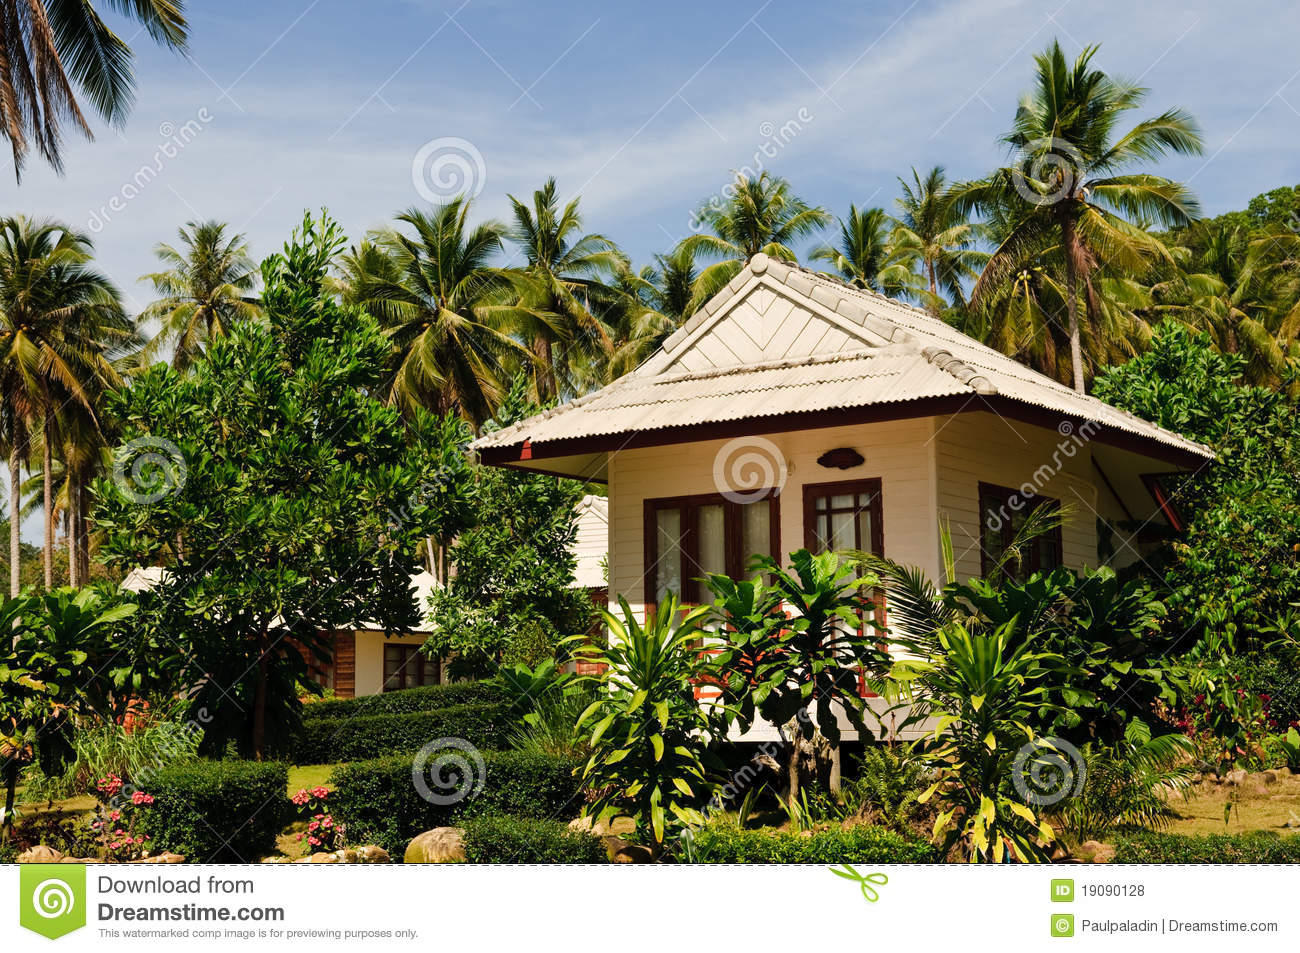 Tropical Bungalow Stock Photo. Image Of Resort, House